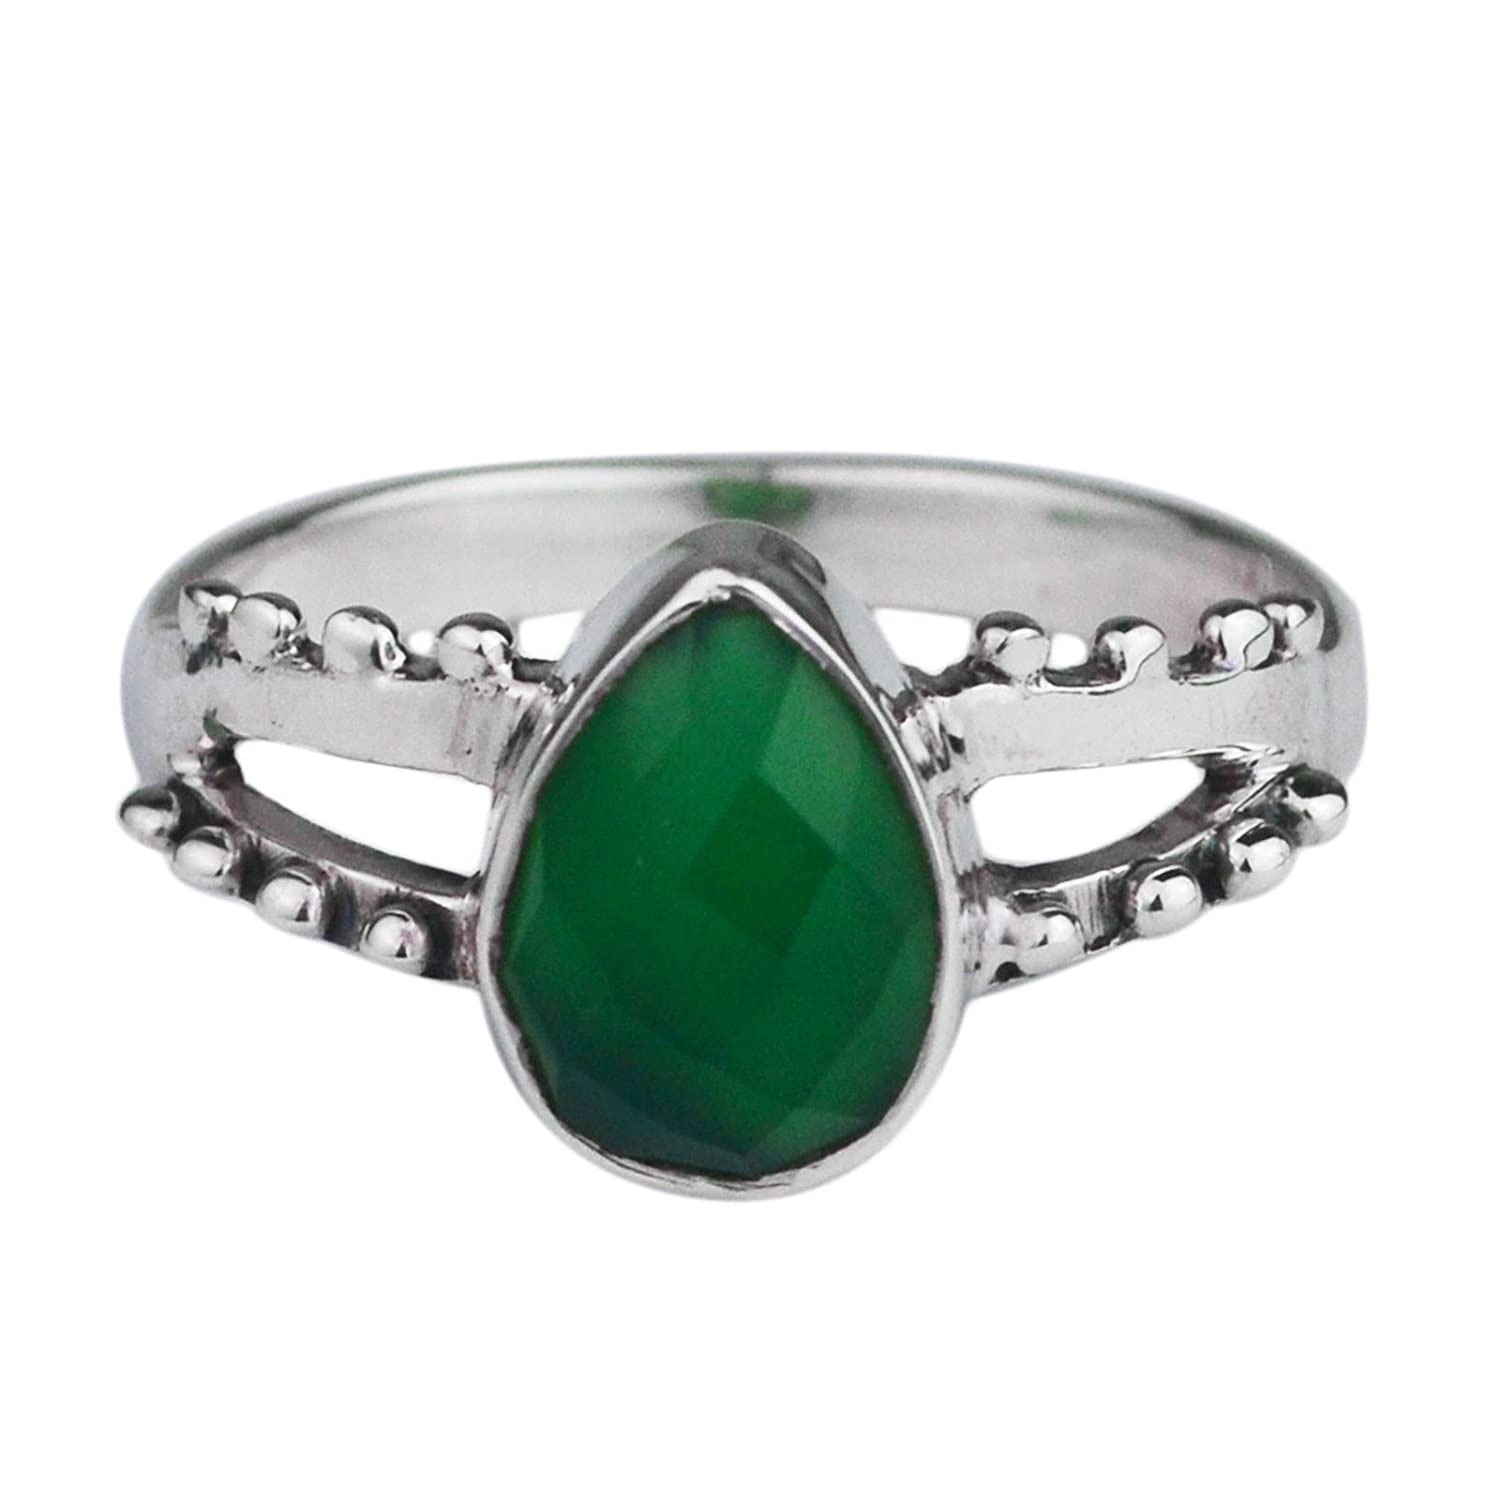 Crystalcraftindia 925 Solid Silver Green Onyx gemstone Rings Size 6 US 2.52 g cci